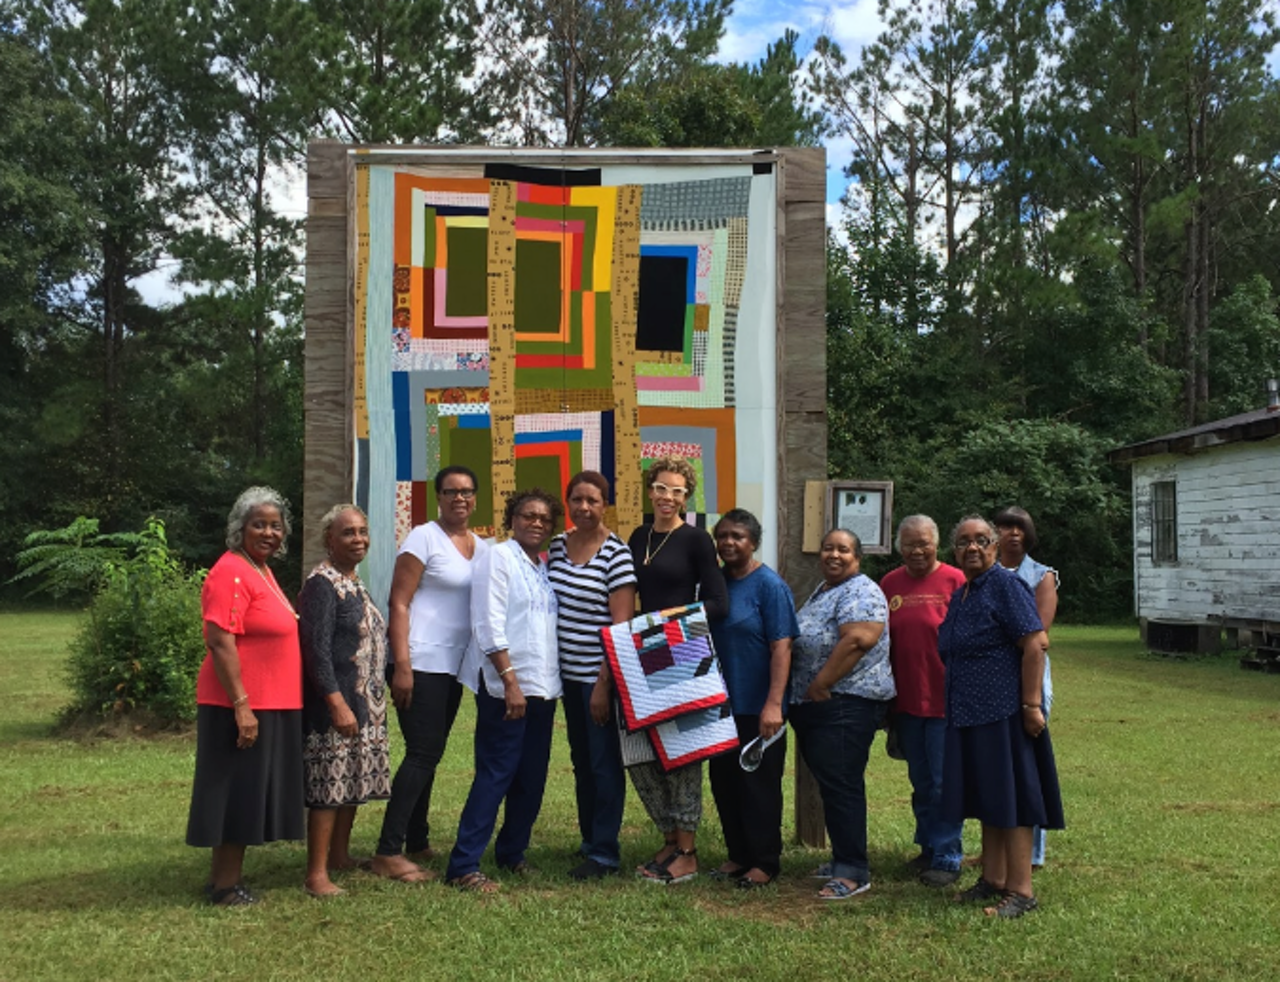 Members of the Collective pose with Amy Sherald (holding a quilt). Behind them is a painted mural based on a quilt Mary Ann Pettway's mother made.